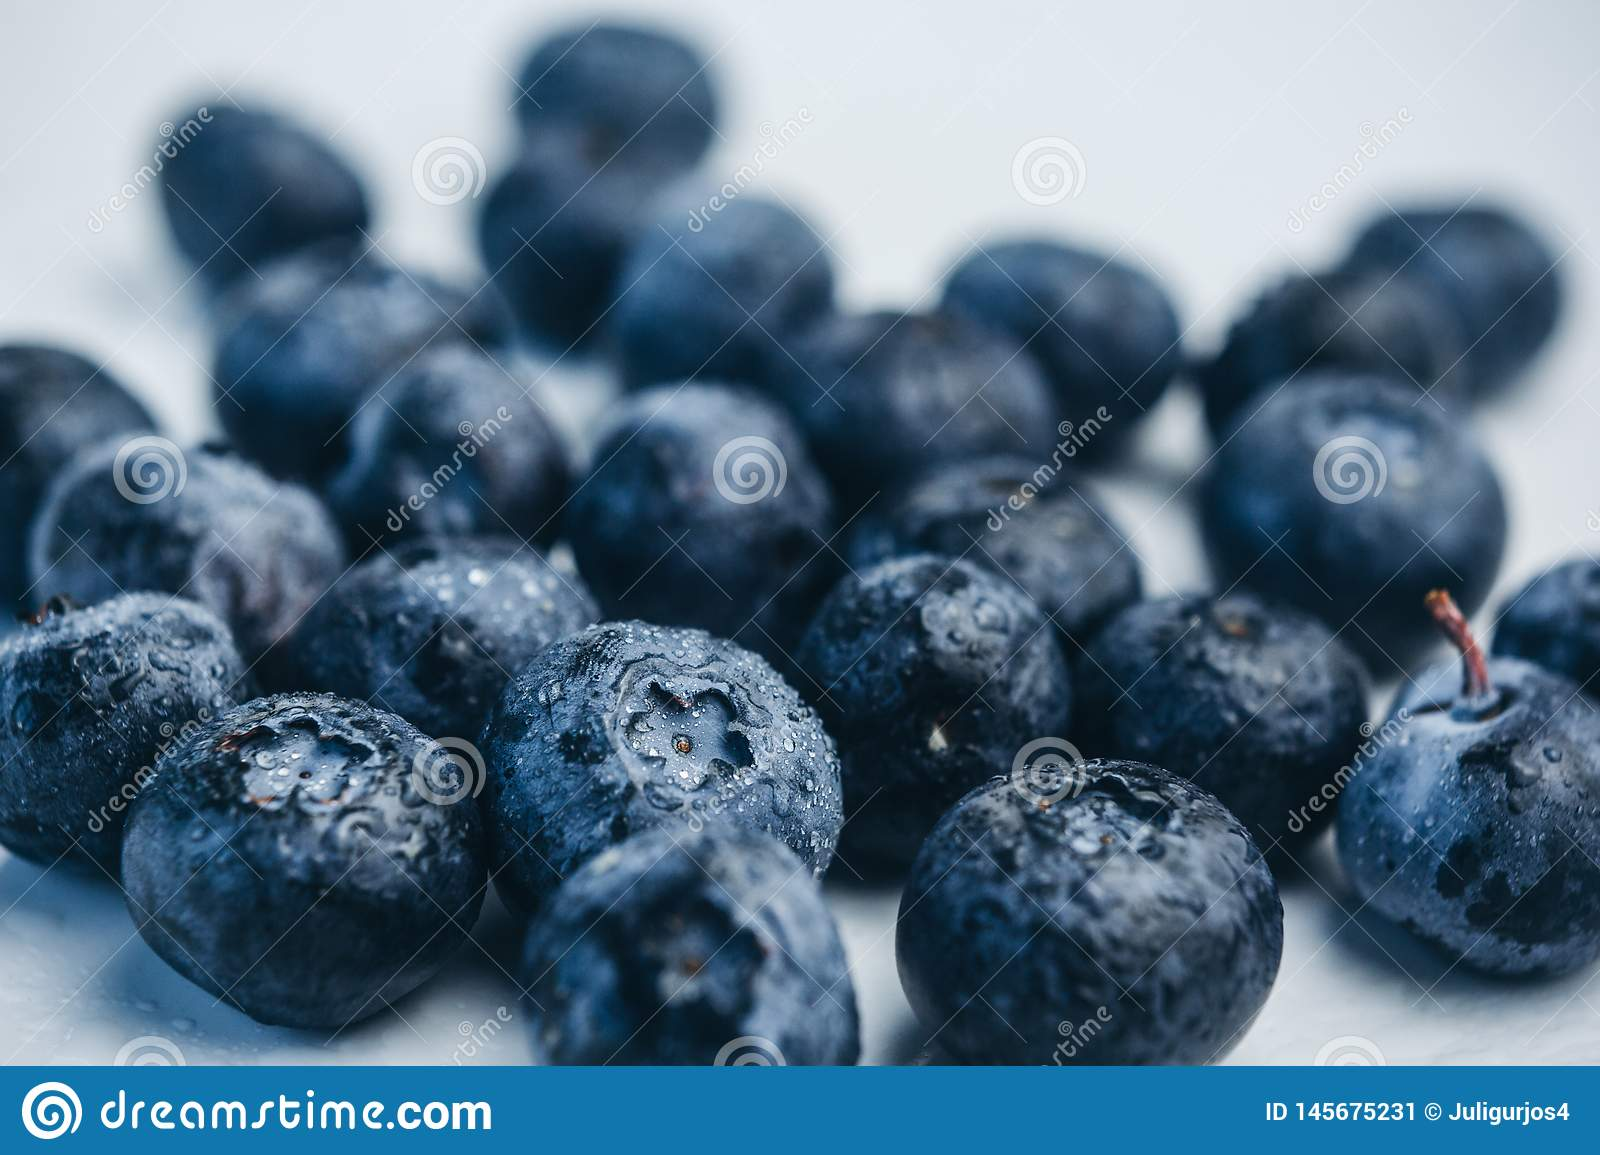 Fresh blueberry berries on a white plate close-up. breakfast of wild berries. copy space